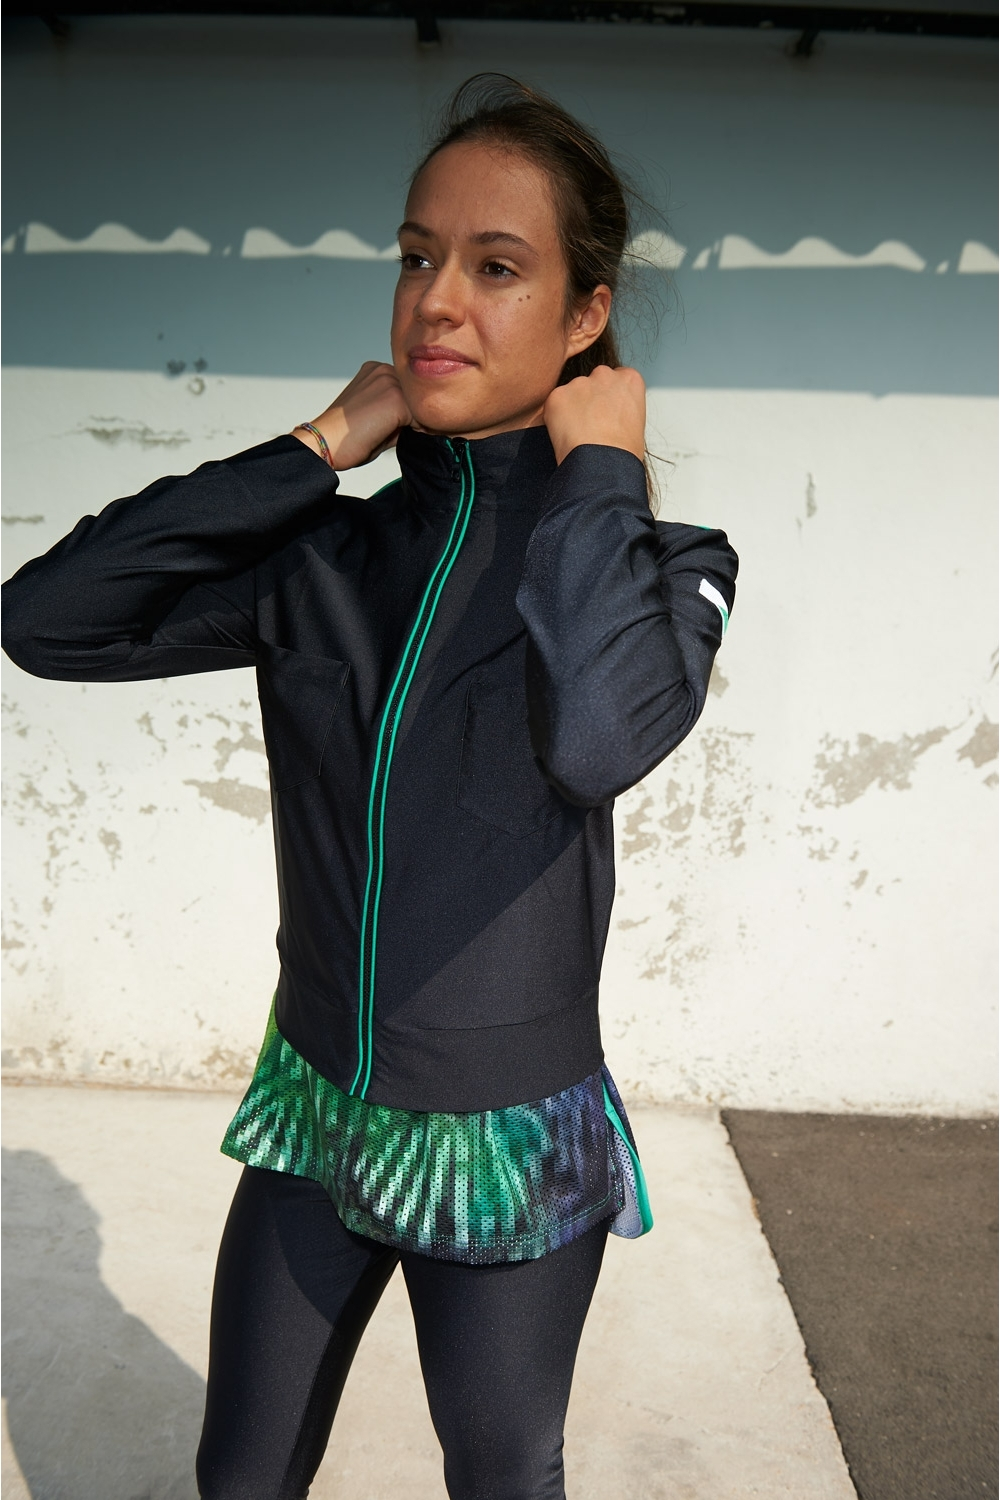 Lily Jacket - Black - Women's Football - Front view